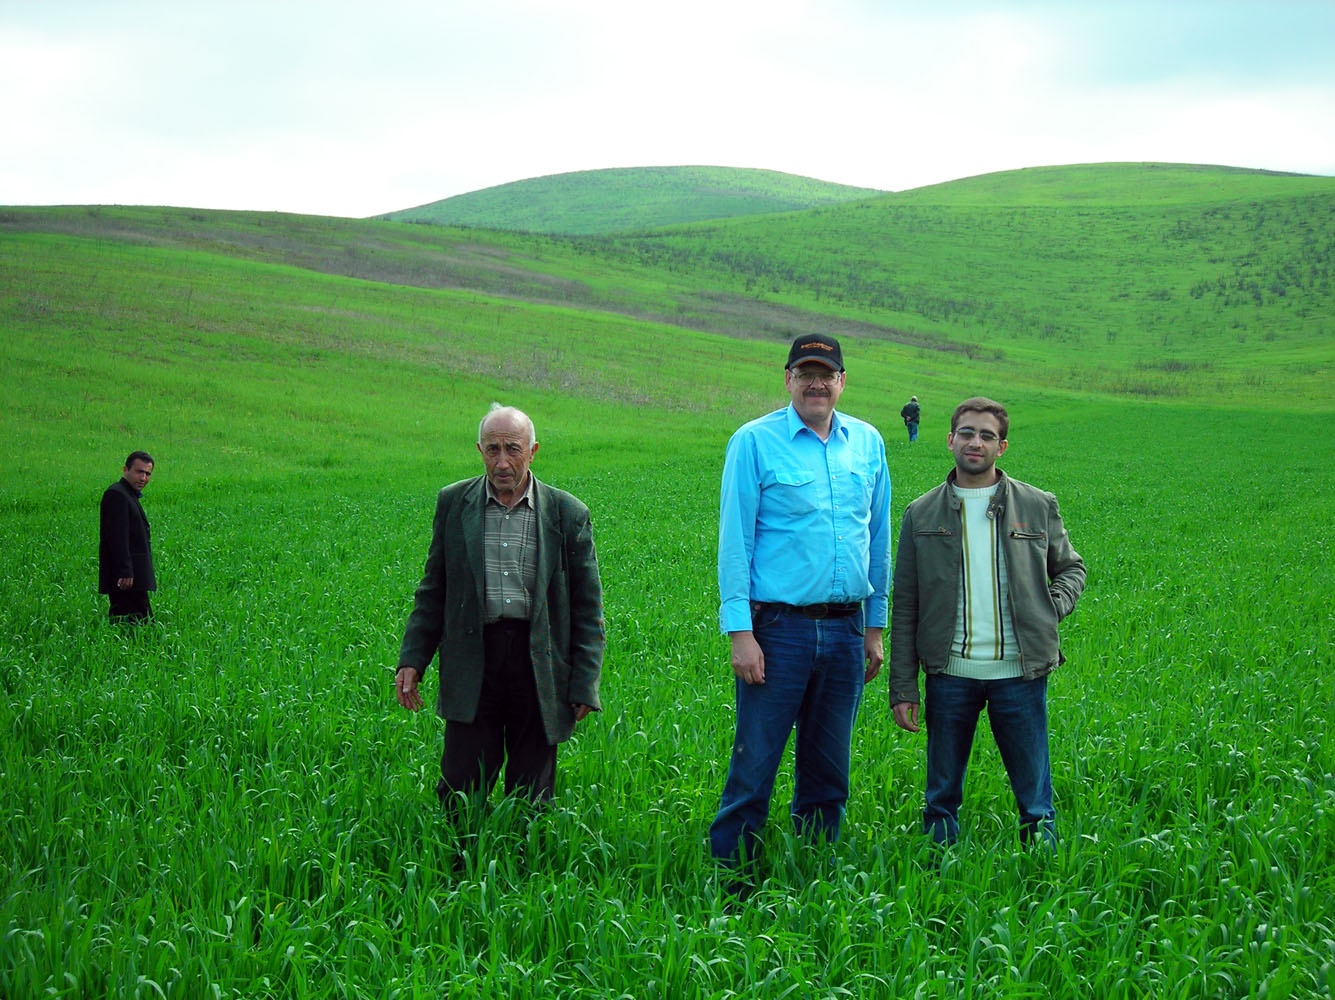 Helping farmers grow wheat puts bread on the table, Armenia.